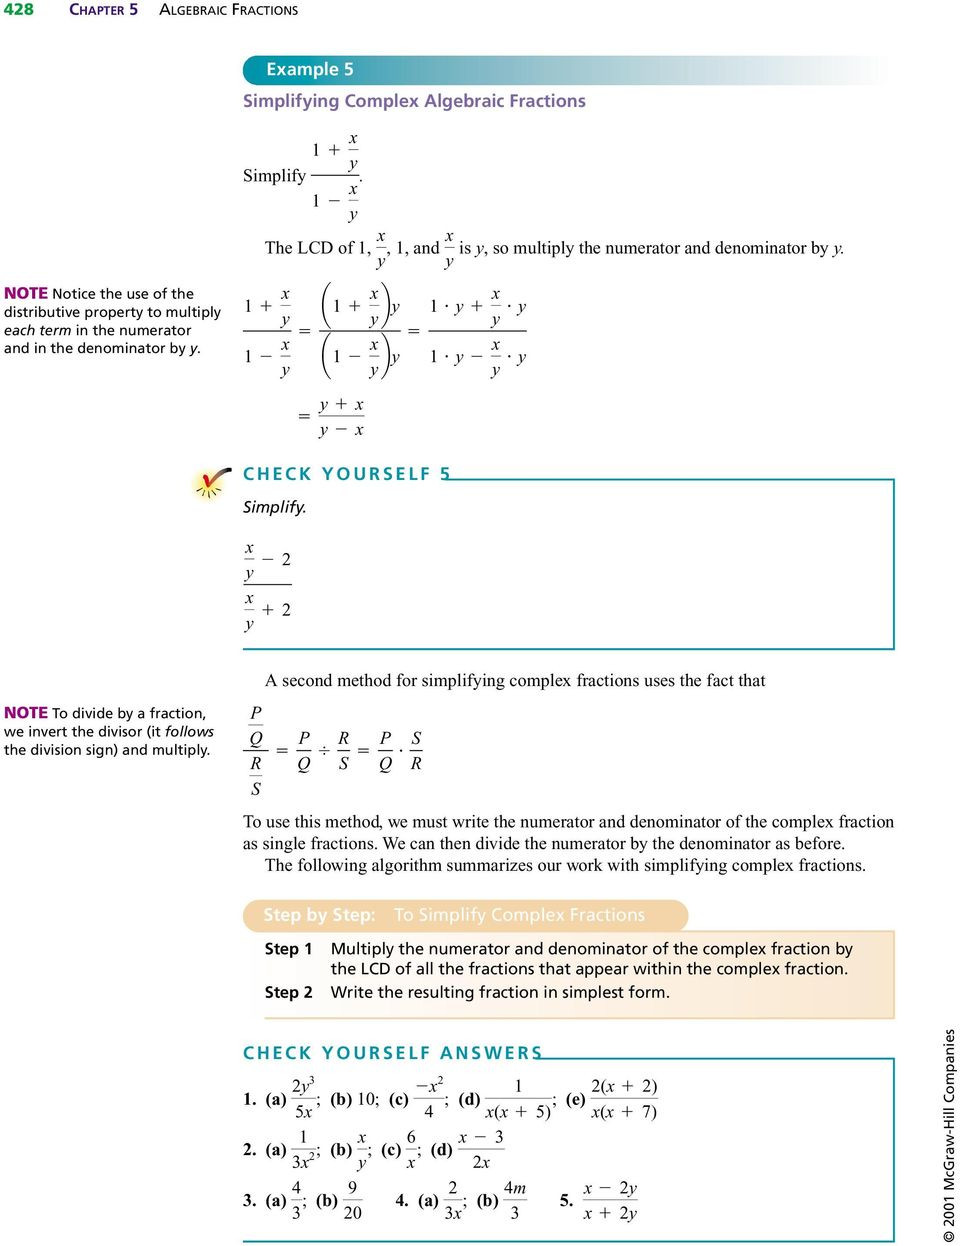 Simplifying Complex Fractions Worksheet Multiplying and Dividing Algebraic Fractions Pdf Free Download